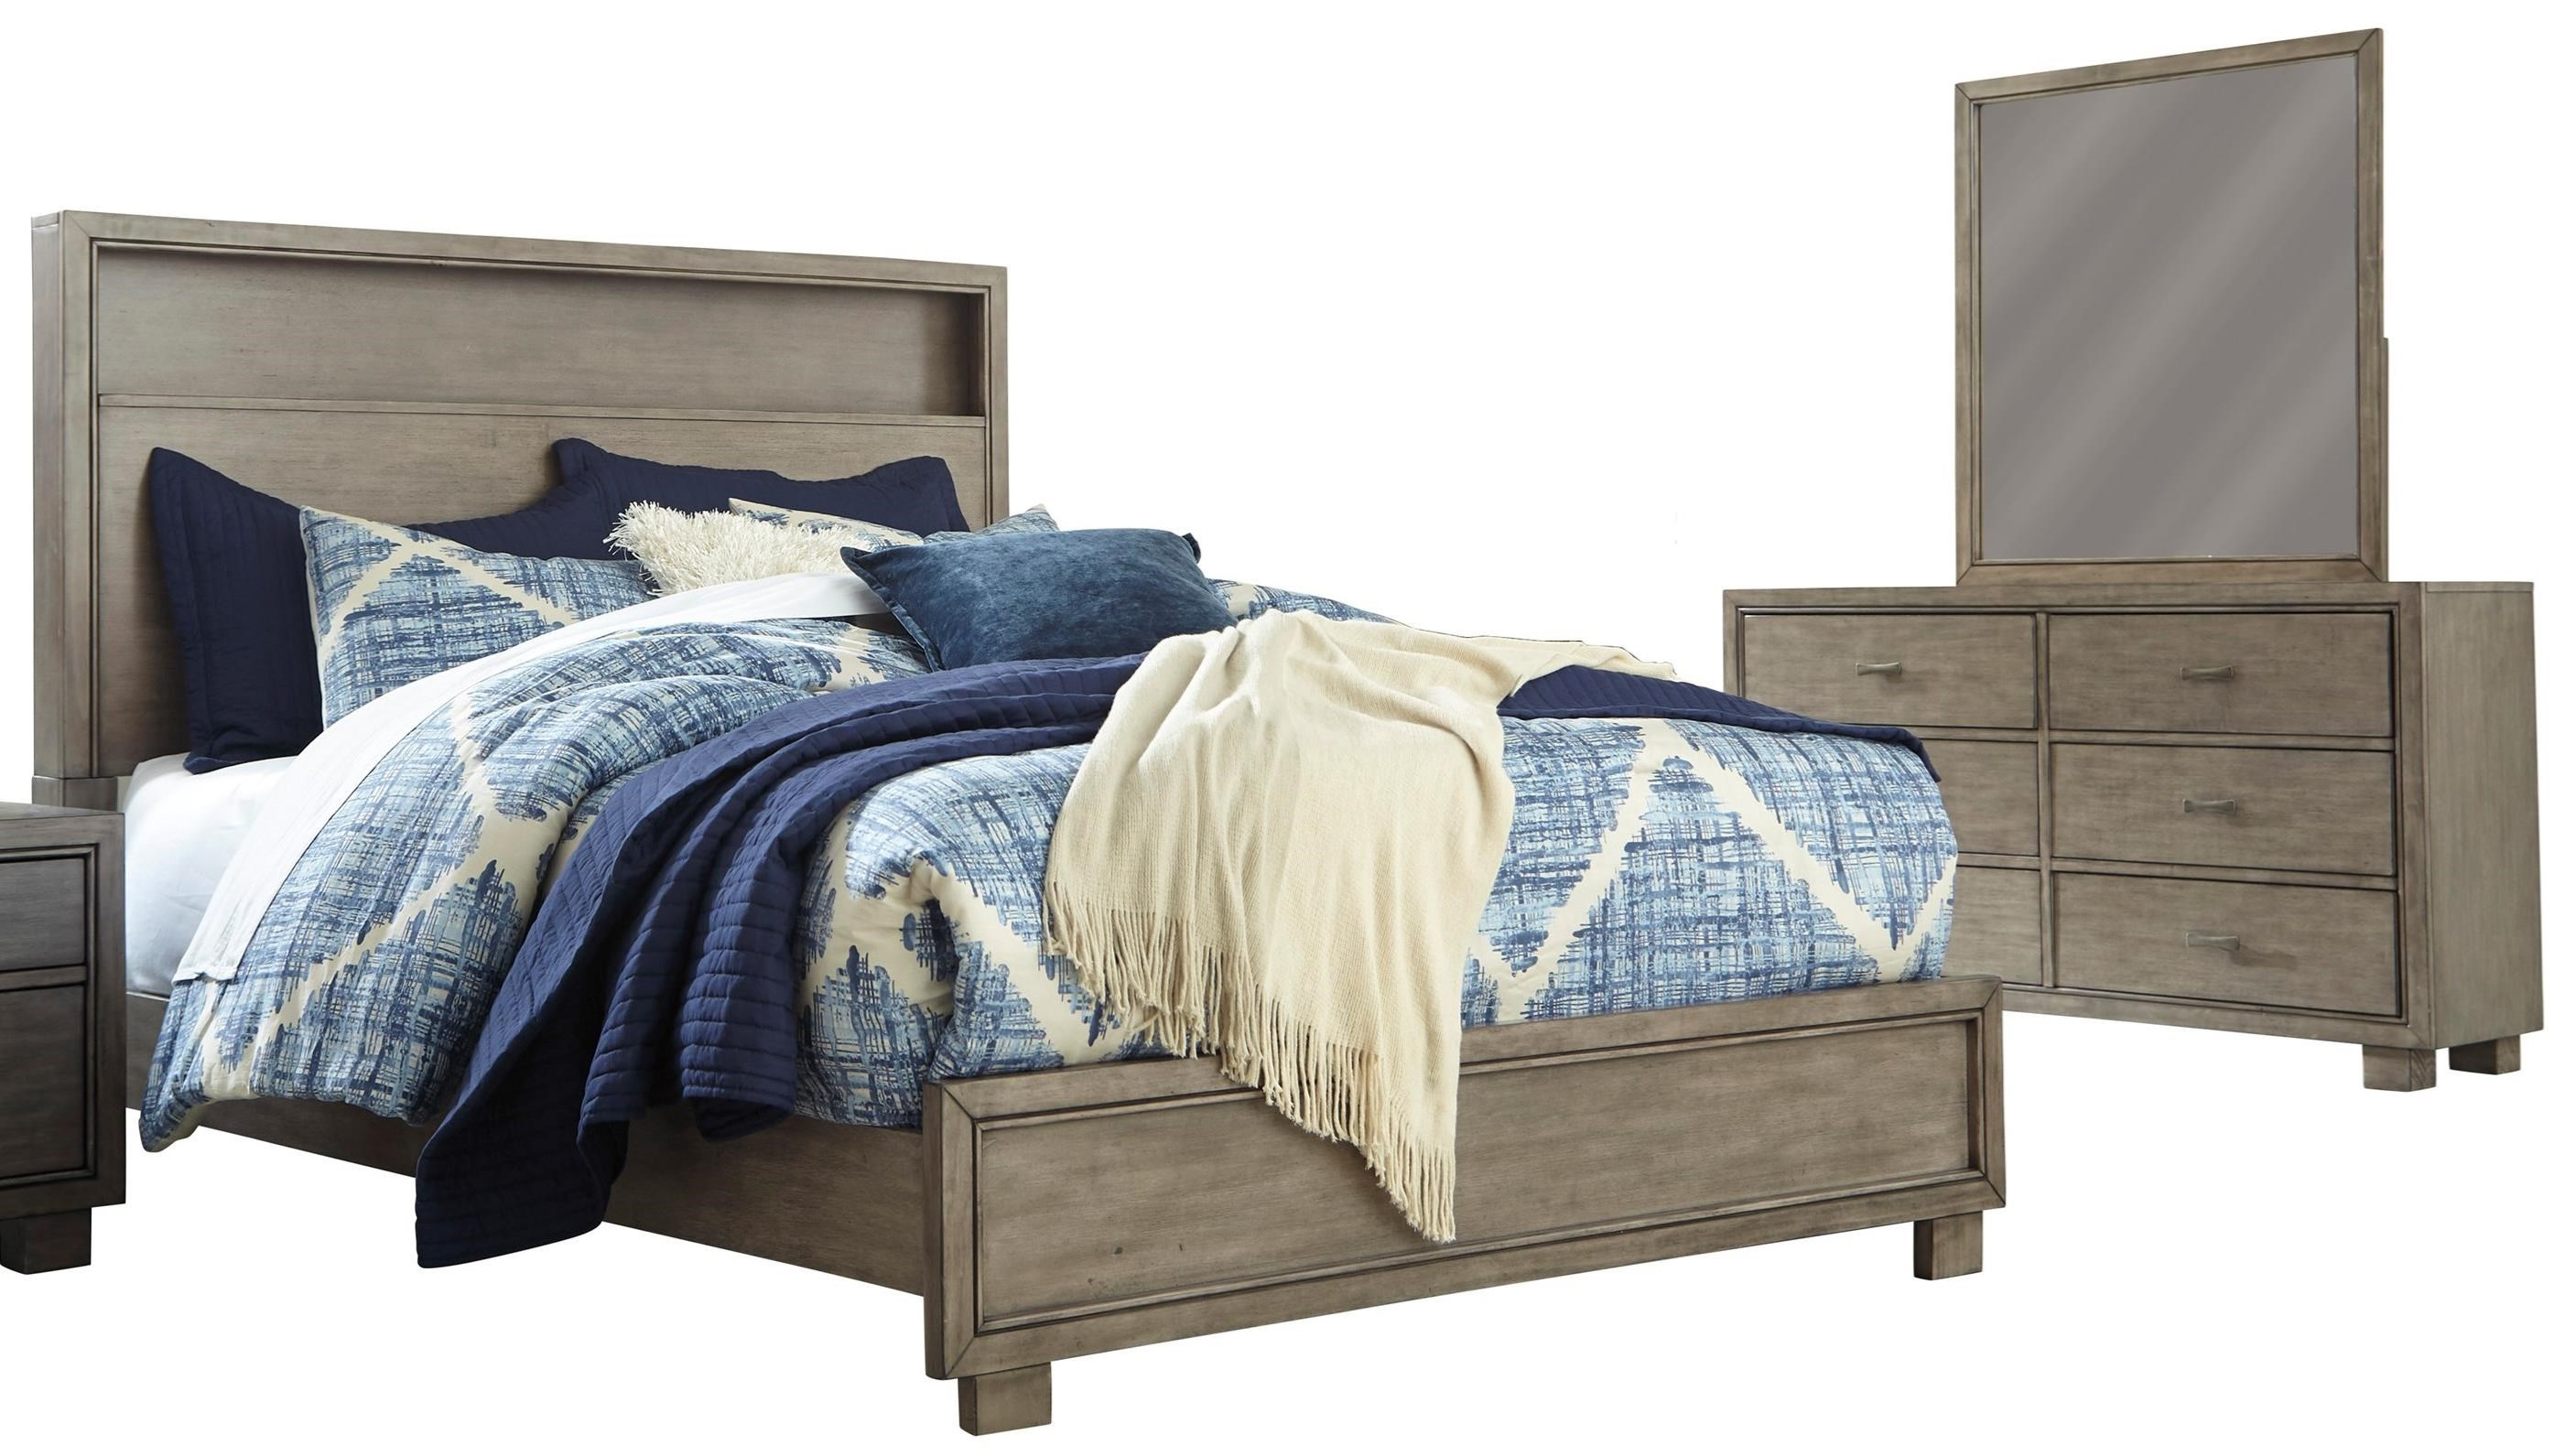 Arnett Queen Bedroom Group by Signature Design by Ashley at Simply Home by Lindy's